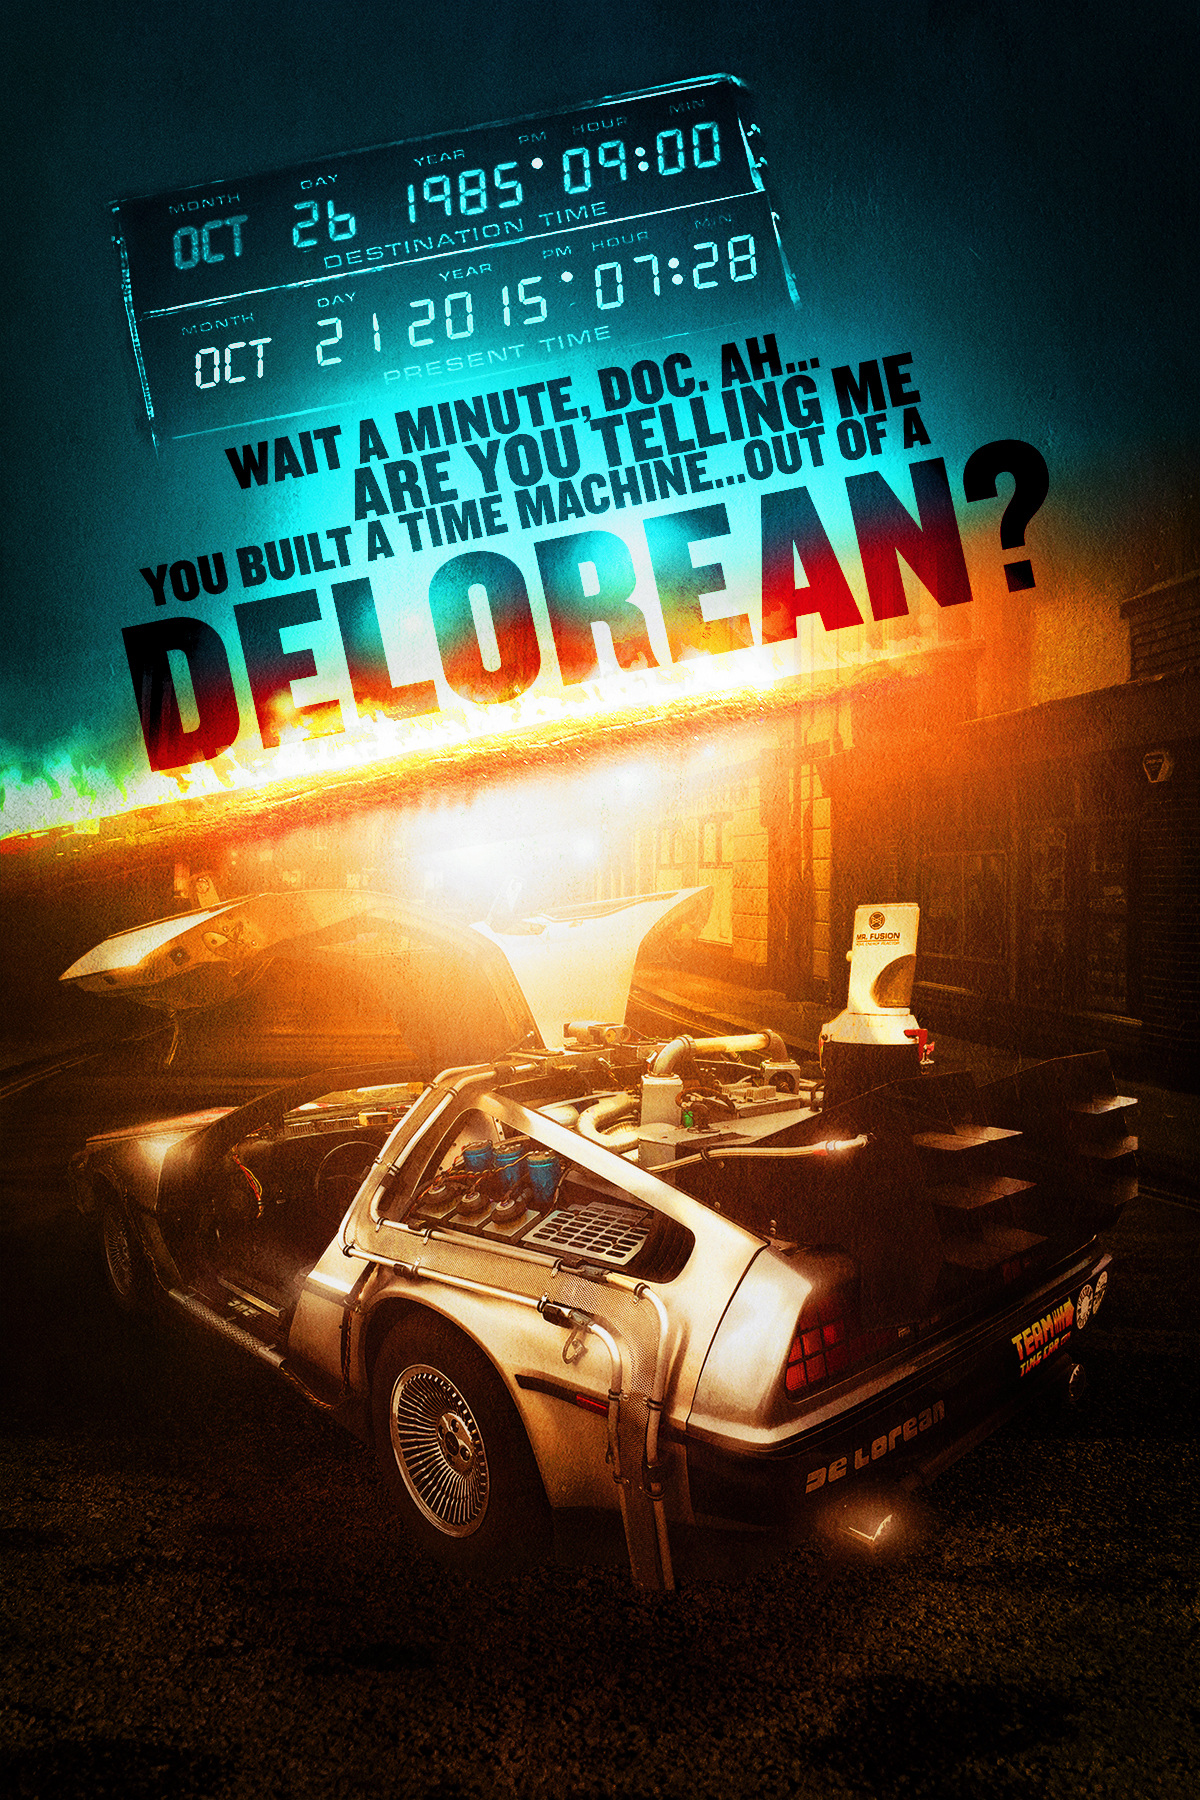 af9816c69b88a In celebration of Back to the Future Day 2015. I wanted to give the  Delorean a modern day action poster feel while keeping the nostalgia built  in.